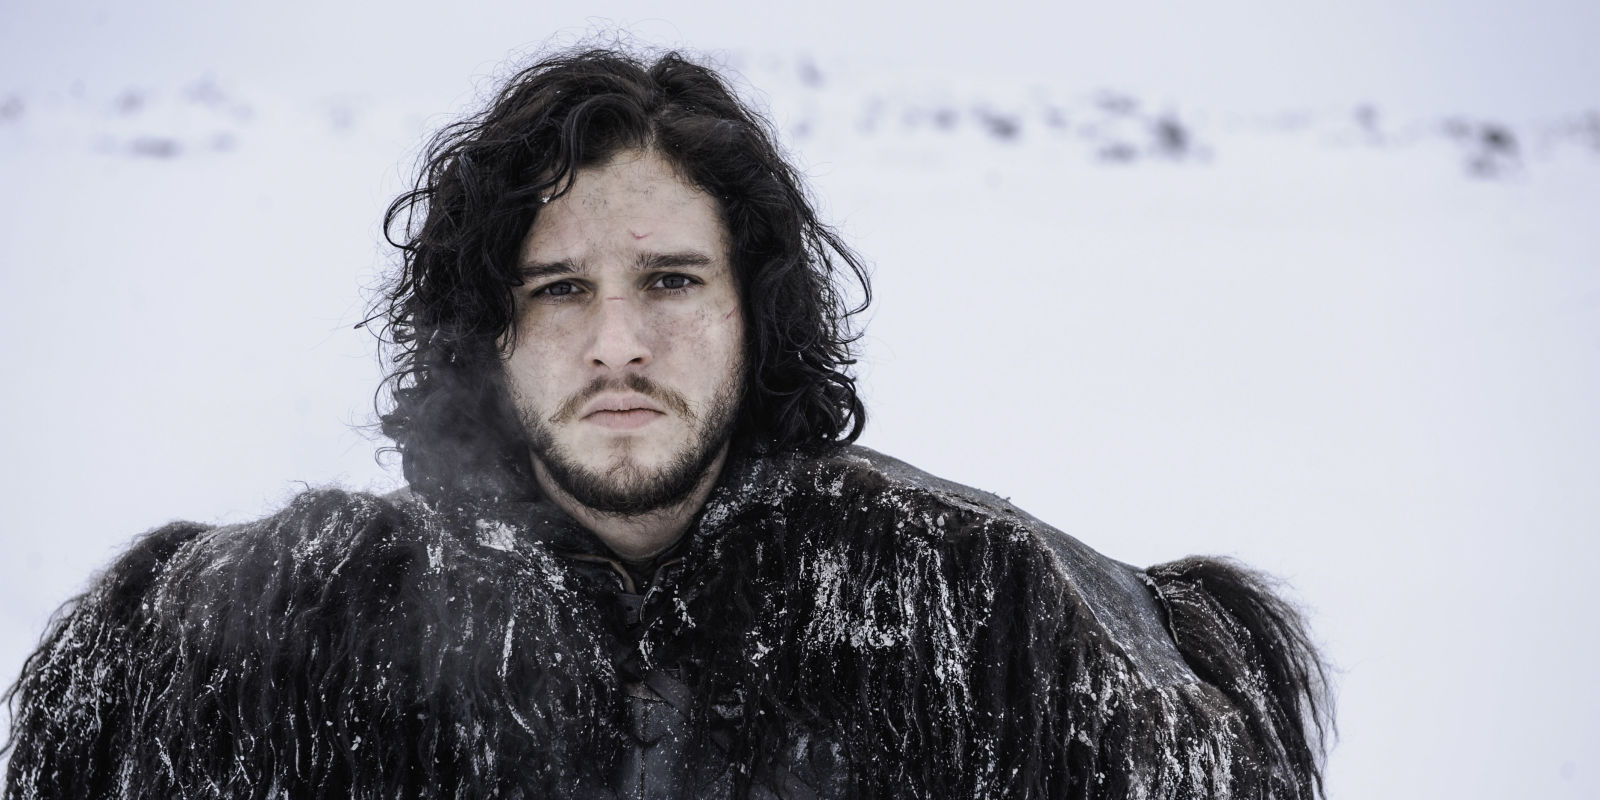 u0026#39;Game of Thronesu0026#39;: Hereu0026#39;s Why Jon Snow Is Dead